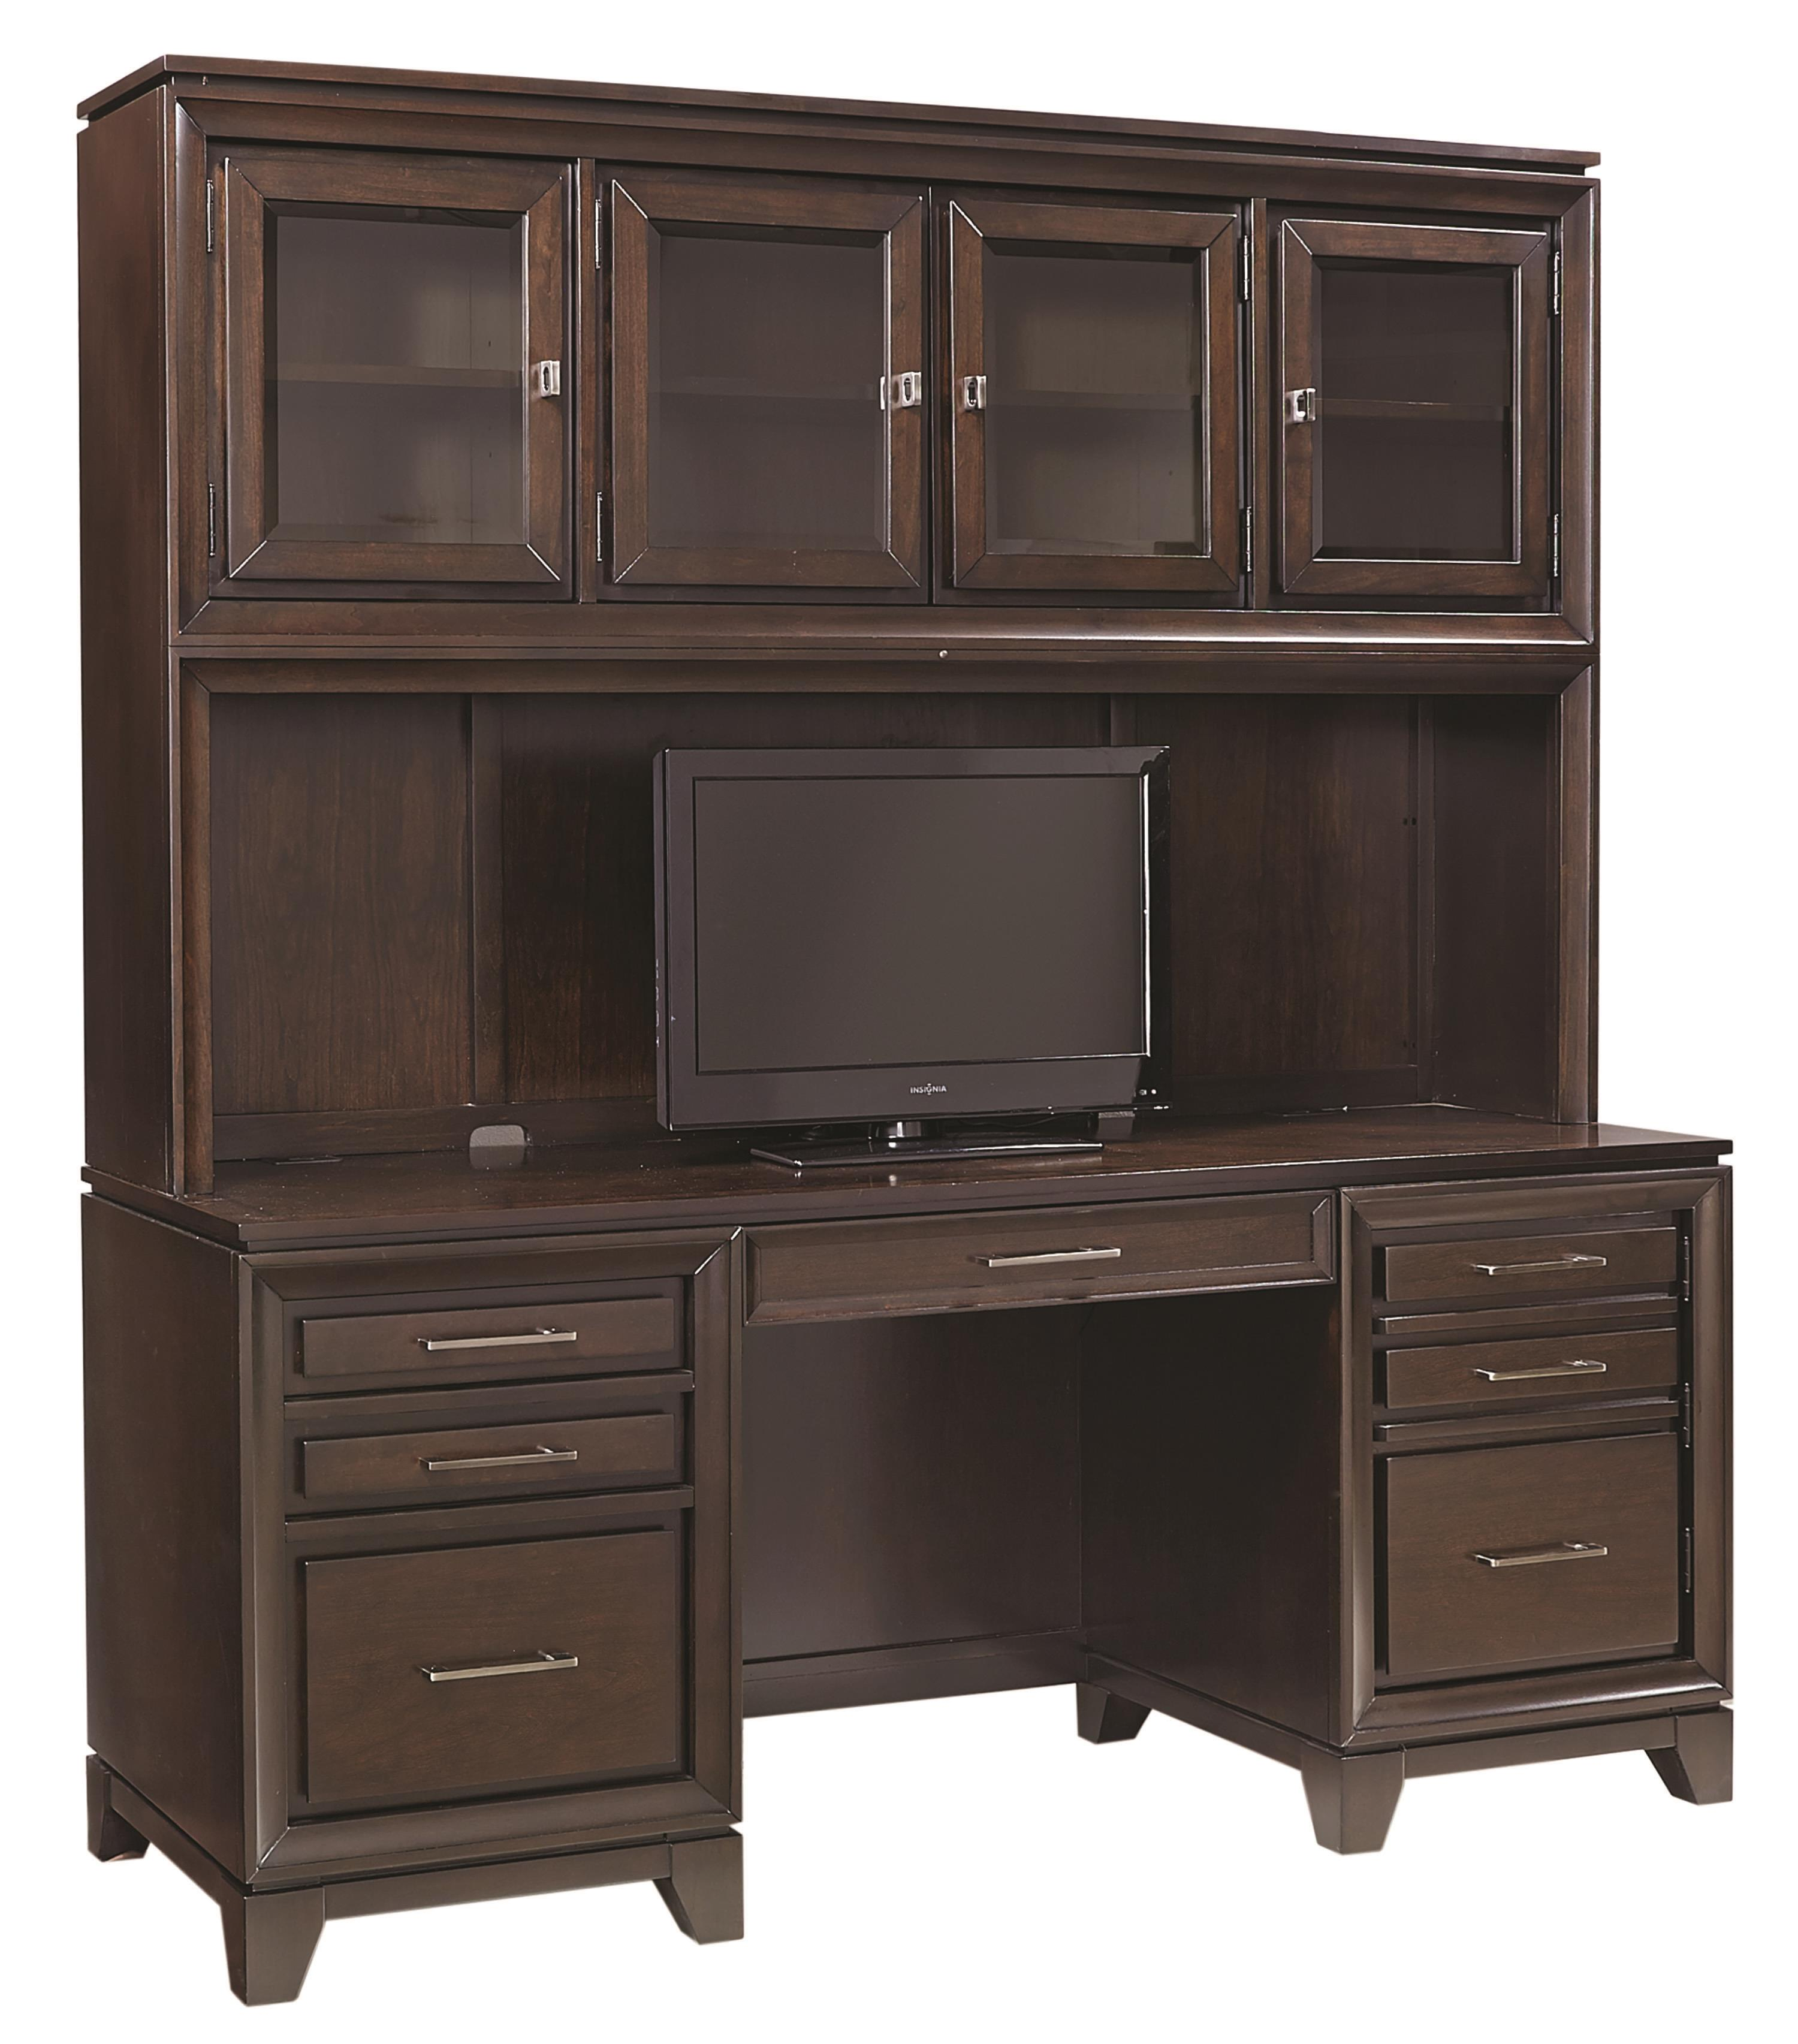 "Aspenhome Viewscape 72 "" Double Pedestal Credenza and Hutch - Item Number: I73-318+319"